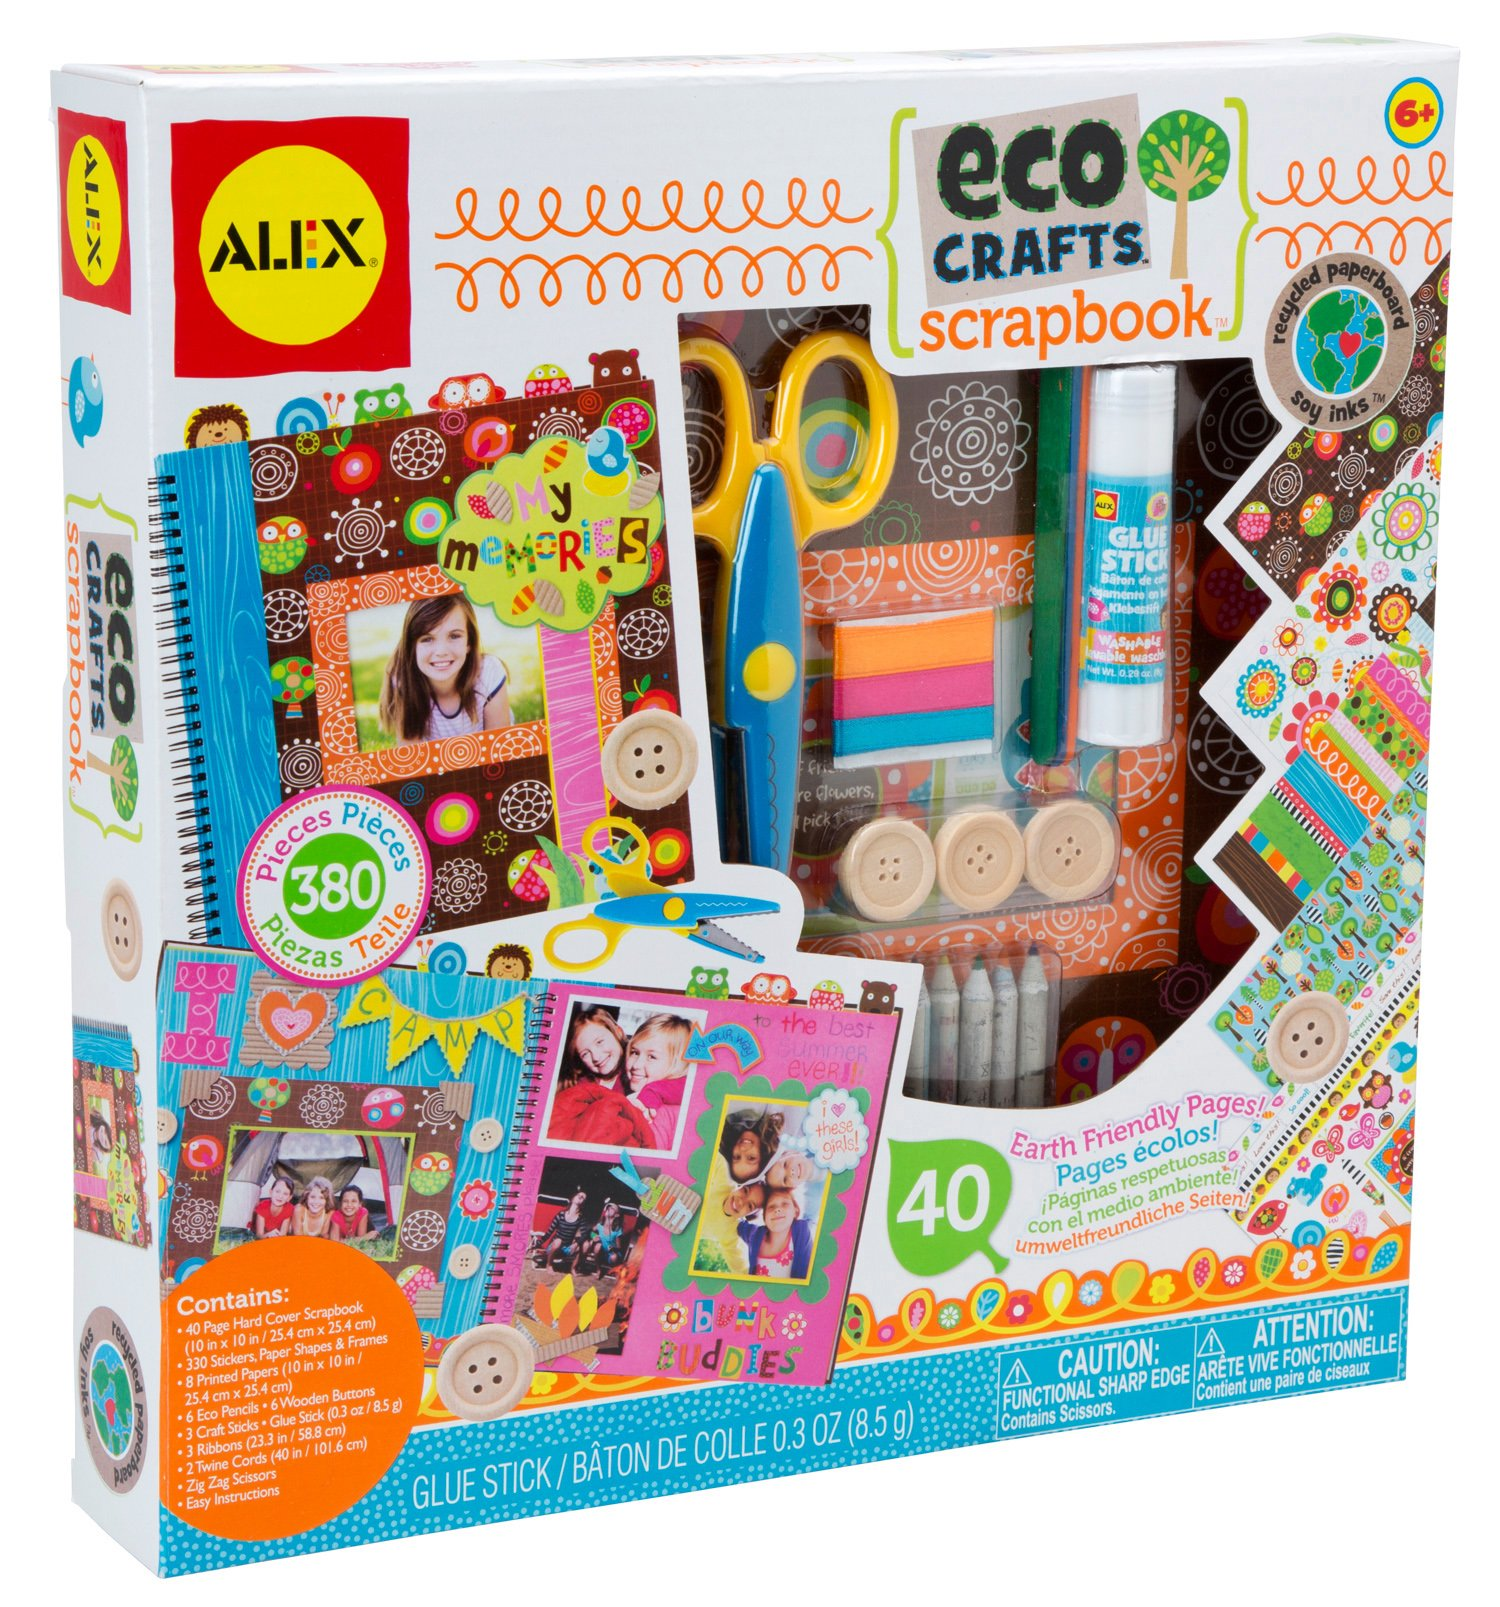 ALEX Toys Craft Eco Crafts Scrapbook by ALEX Toys